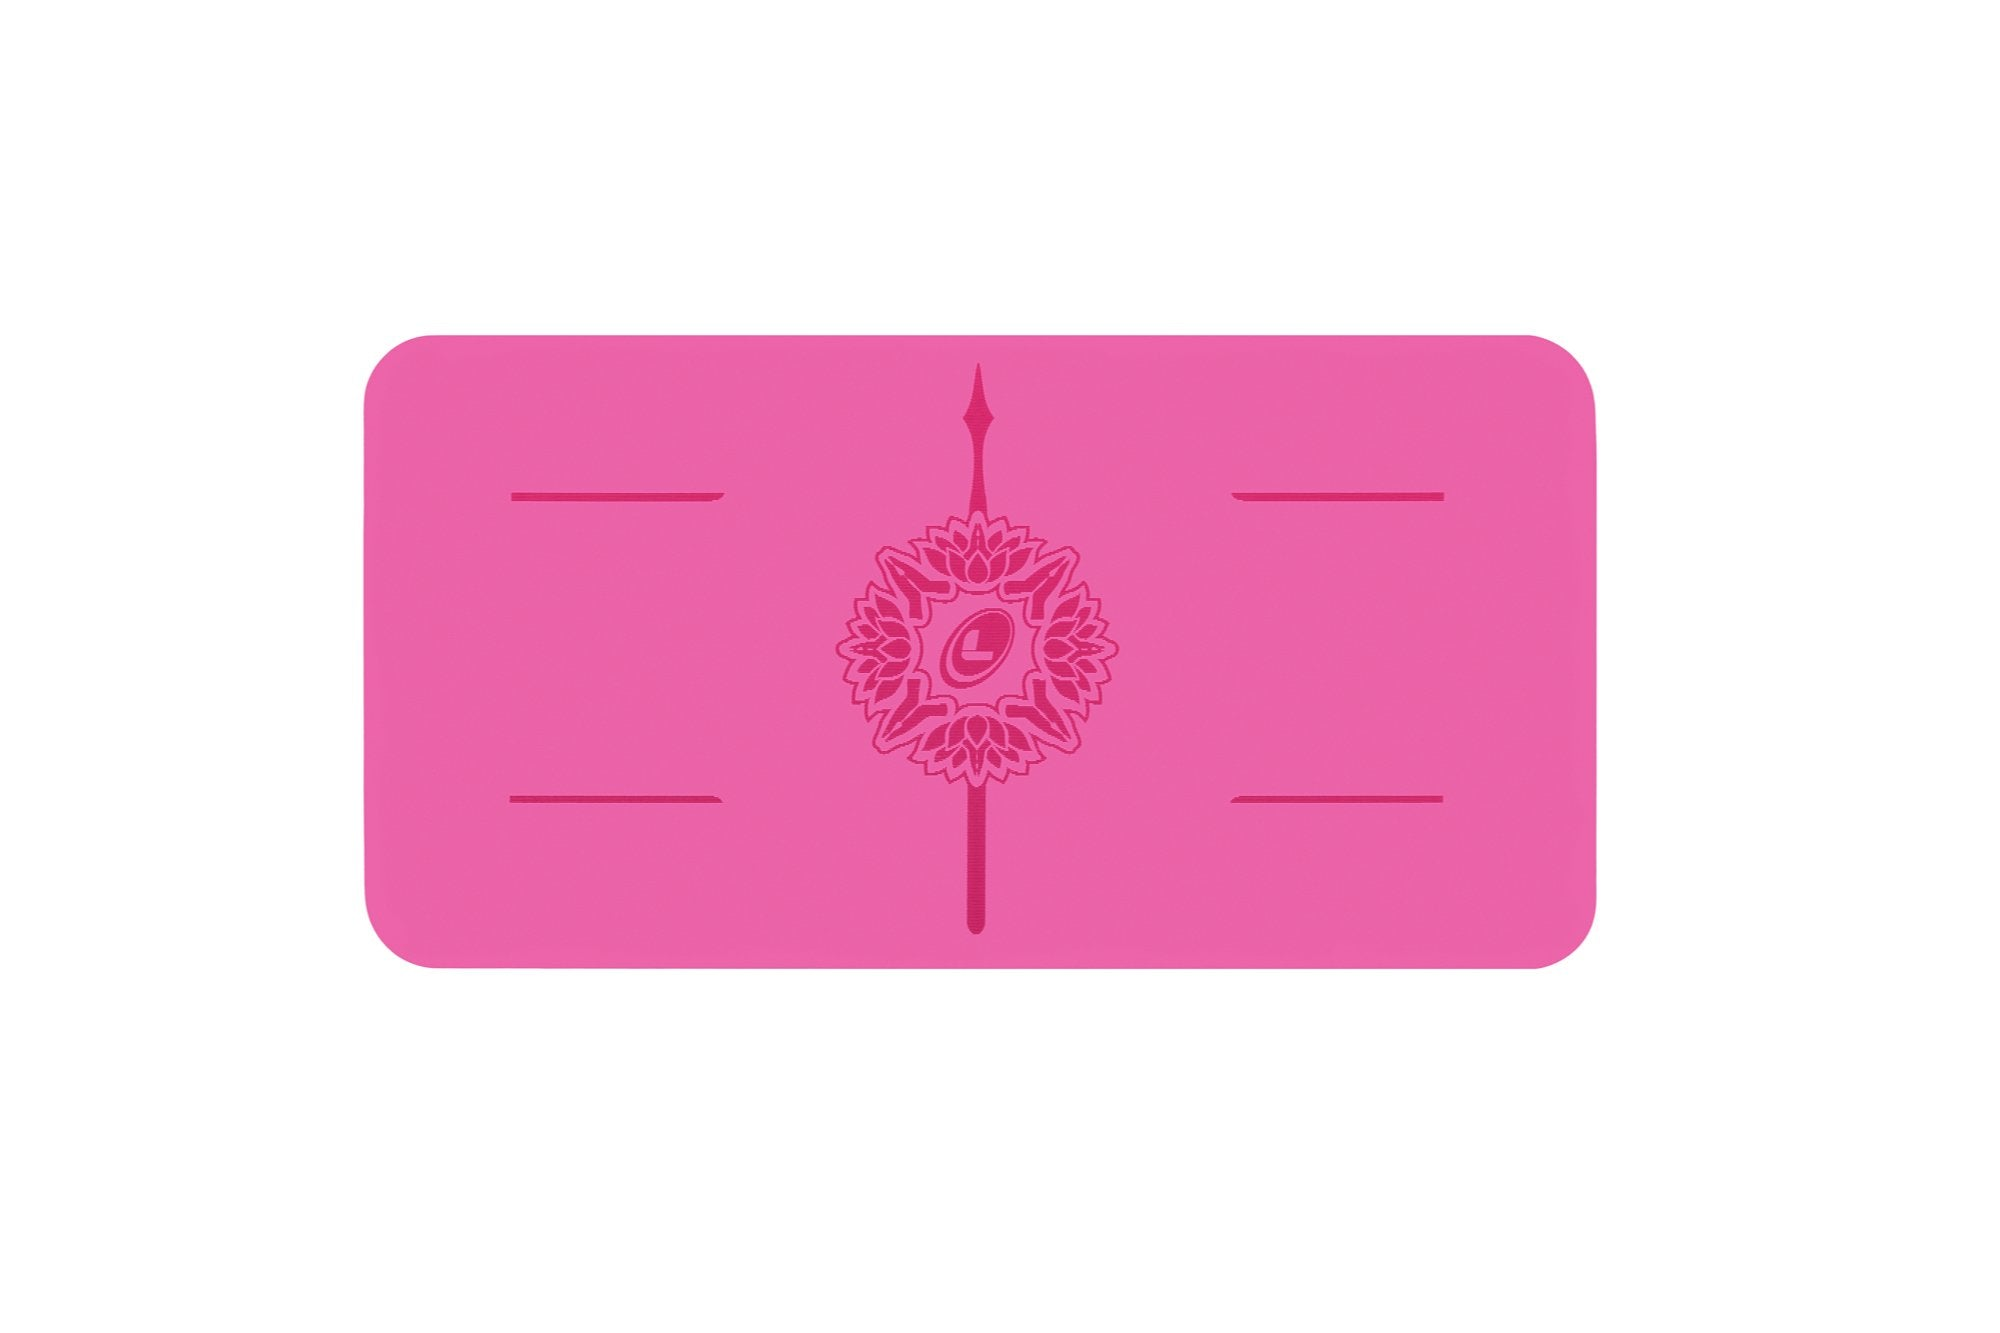 Liforme Yoga Pad - Grateful Pink